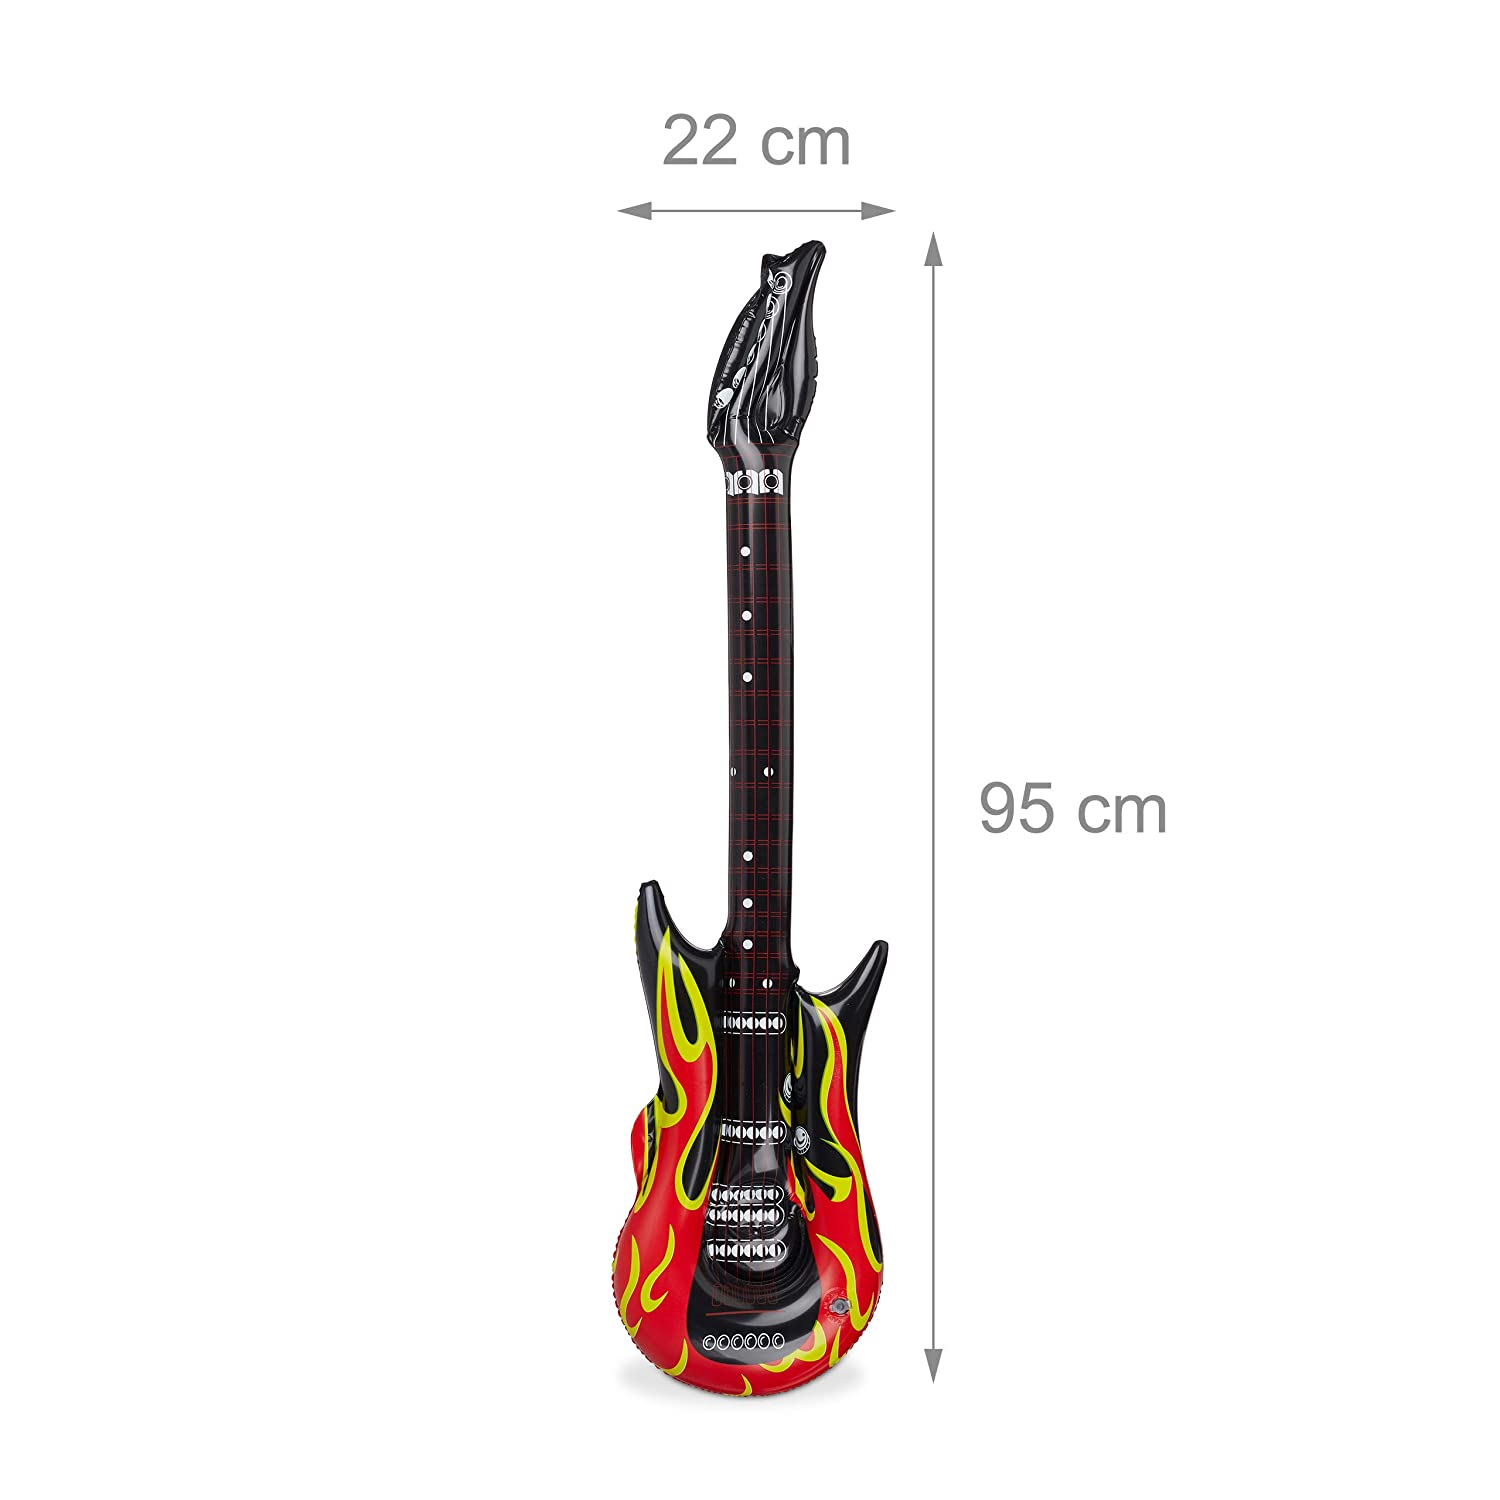 Relaxdays Guitarra Hinchable Rock, Color rojo/negro 95 cm 10024257: Amazon.es: Juguetes y juegos